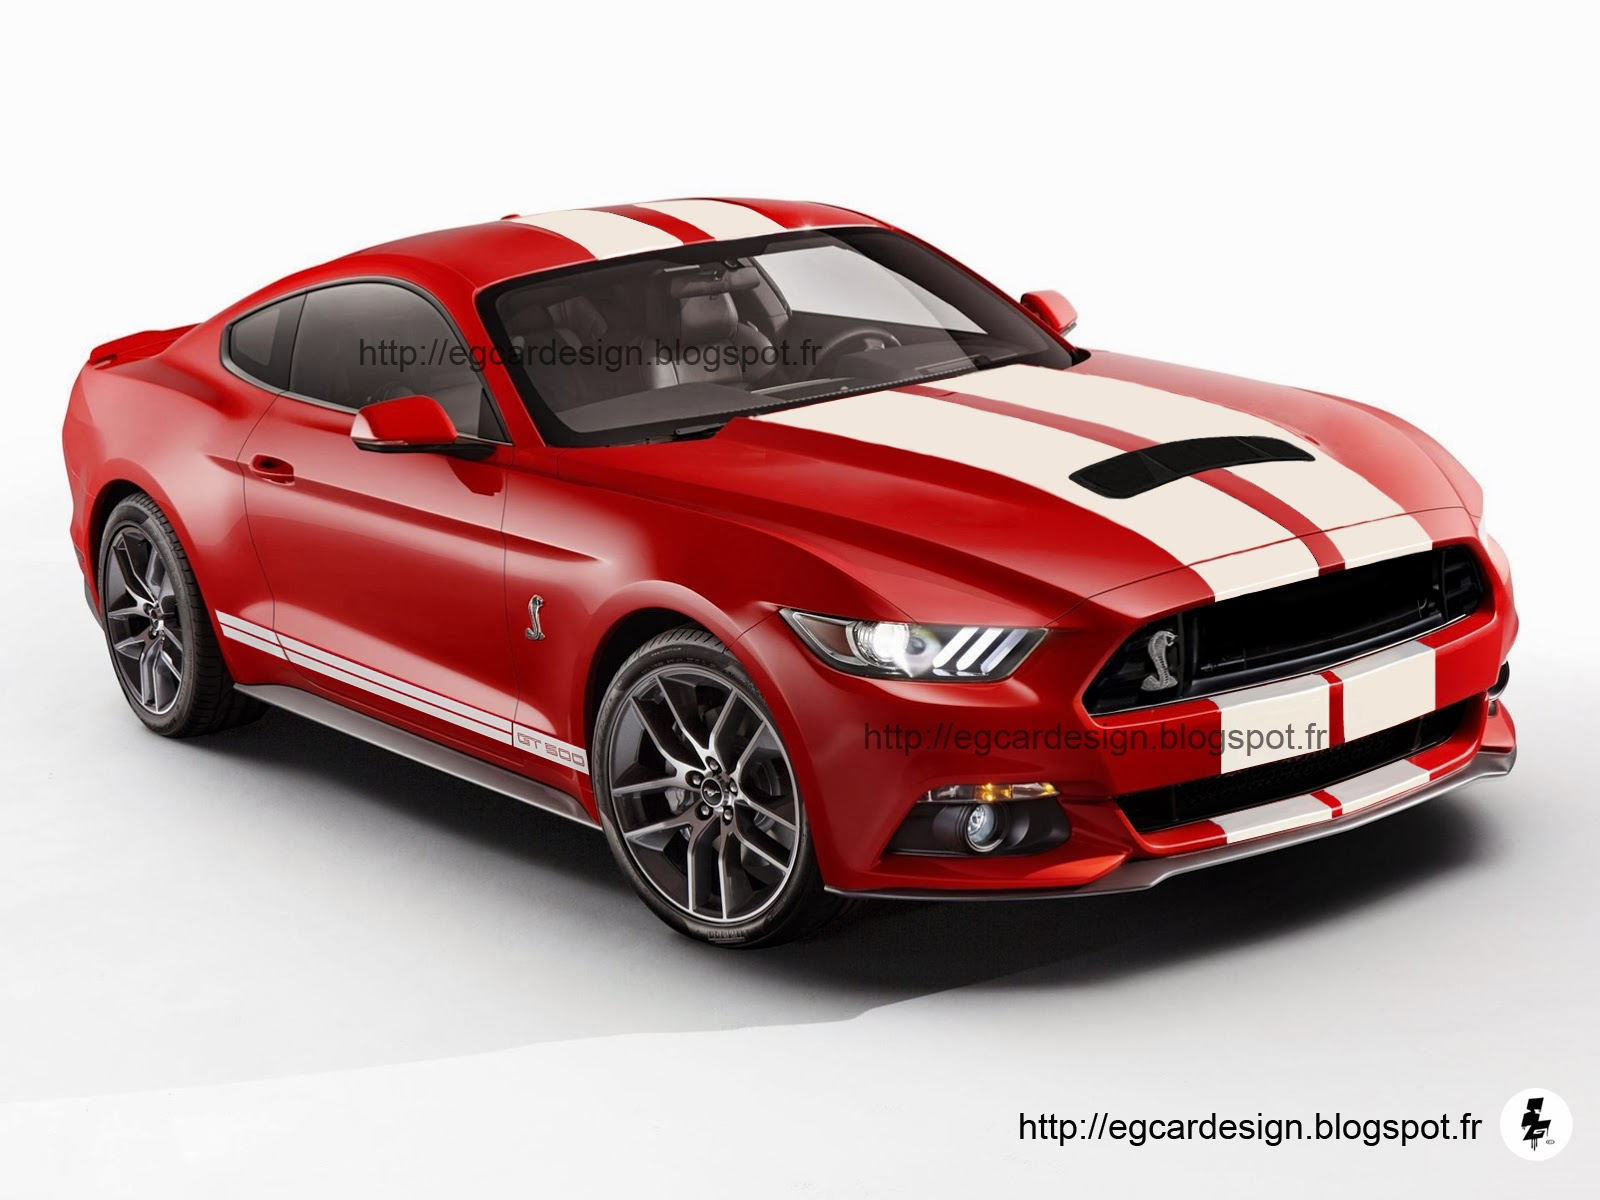 2015 Ford Mustang Shelby Gt500 Cobra HD Wallpaper For Mac 1954   Grivu 1600x1200